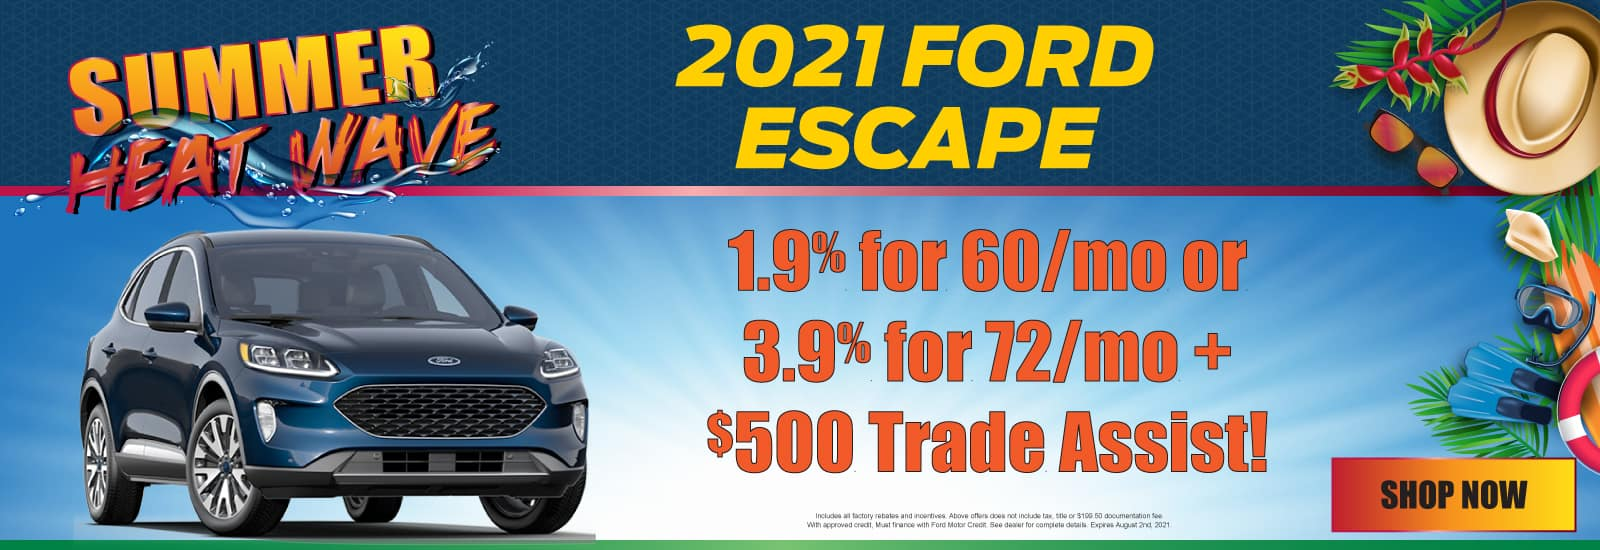 July2021-Ford-Escape-Web-Banner-1600×550